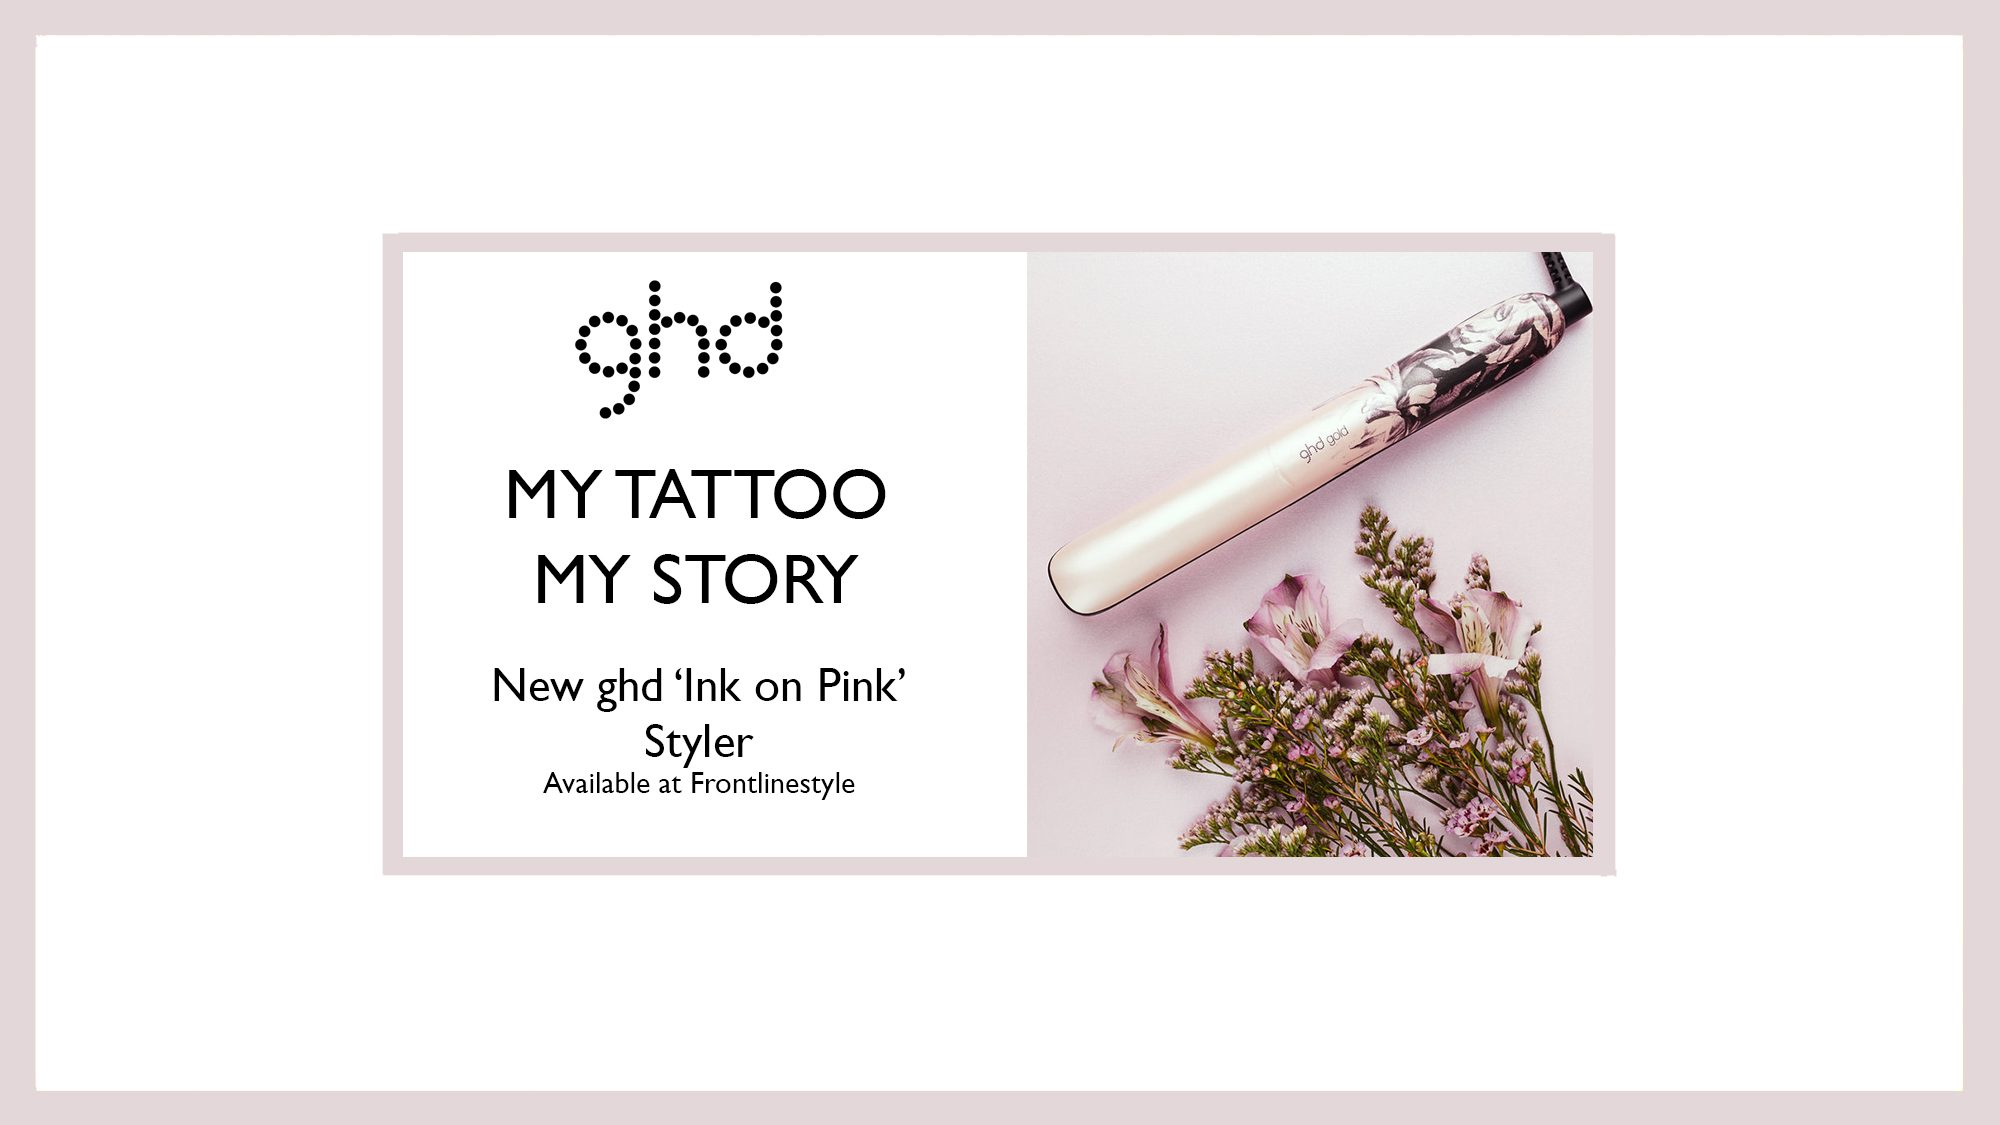 ghd NEW 'Ink On Pink' Styler